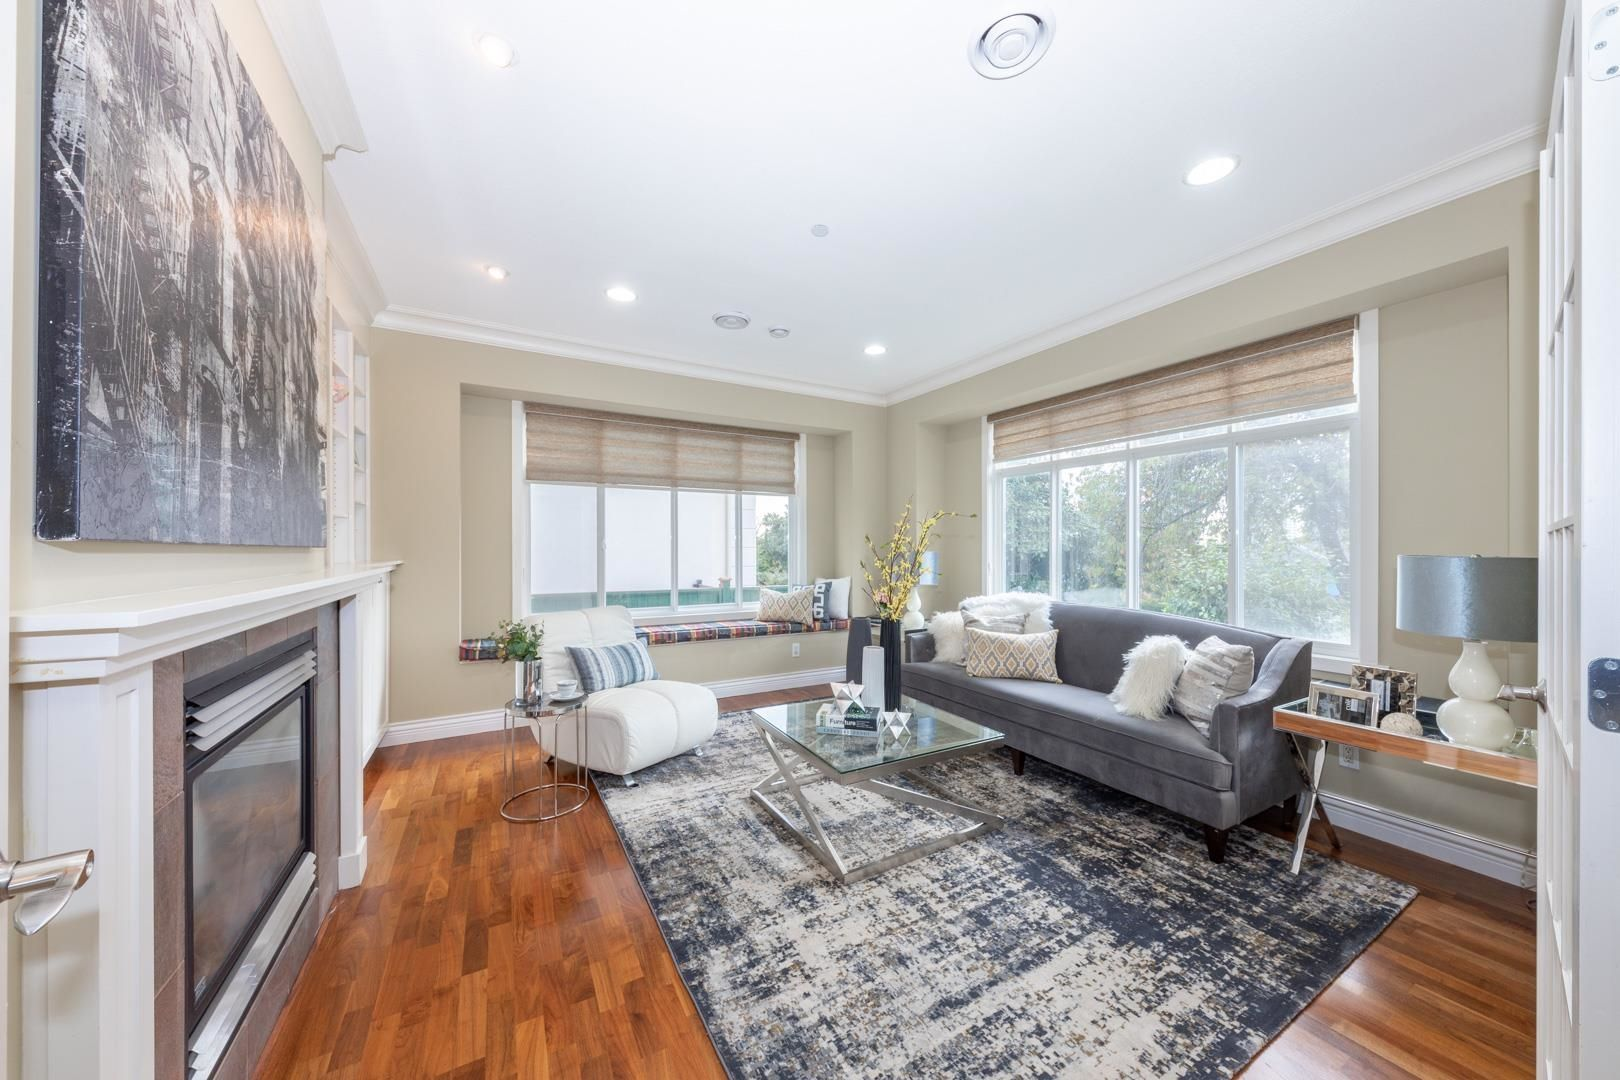 Main Photo: 599 W 61ST Avenue in Vancouver: Marpole House for sale (Vancouver West)  : MLS®# R2613483